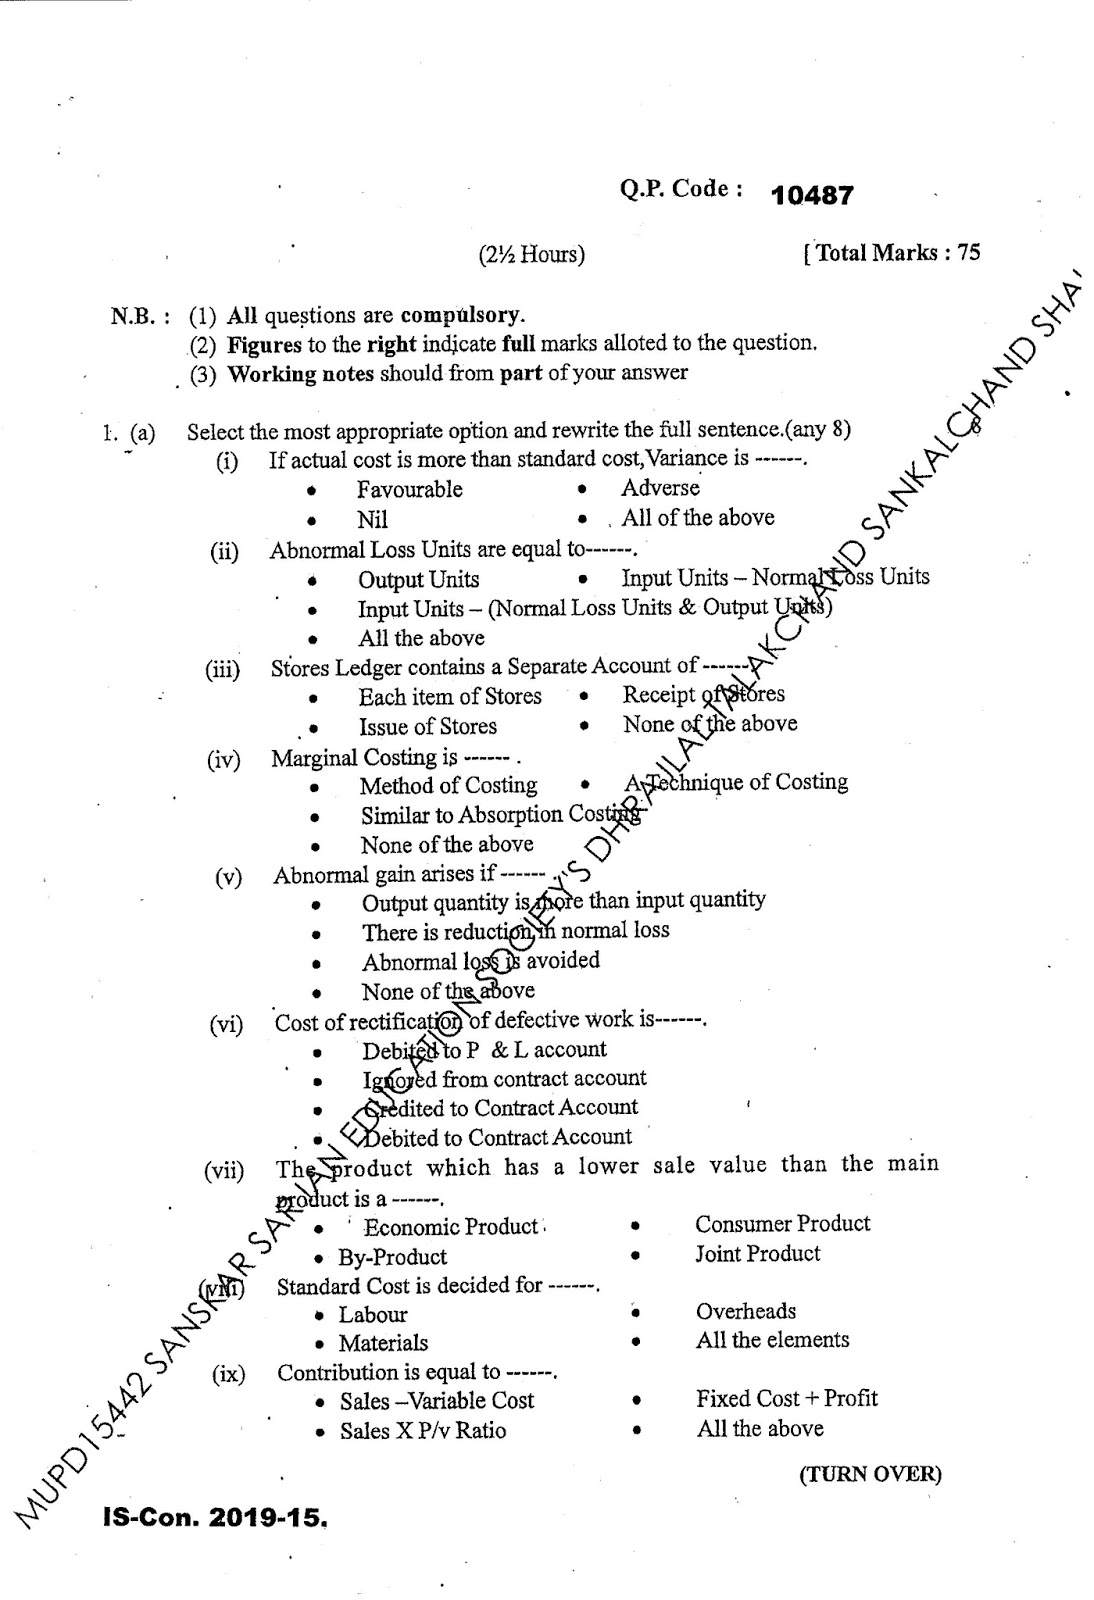 Acc question paper 2017 - Accounting Past Papers | HOW TO